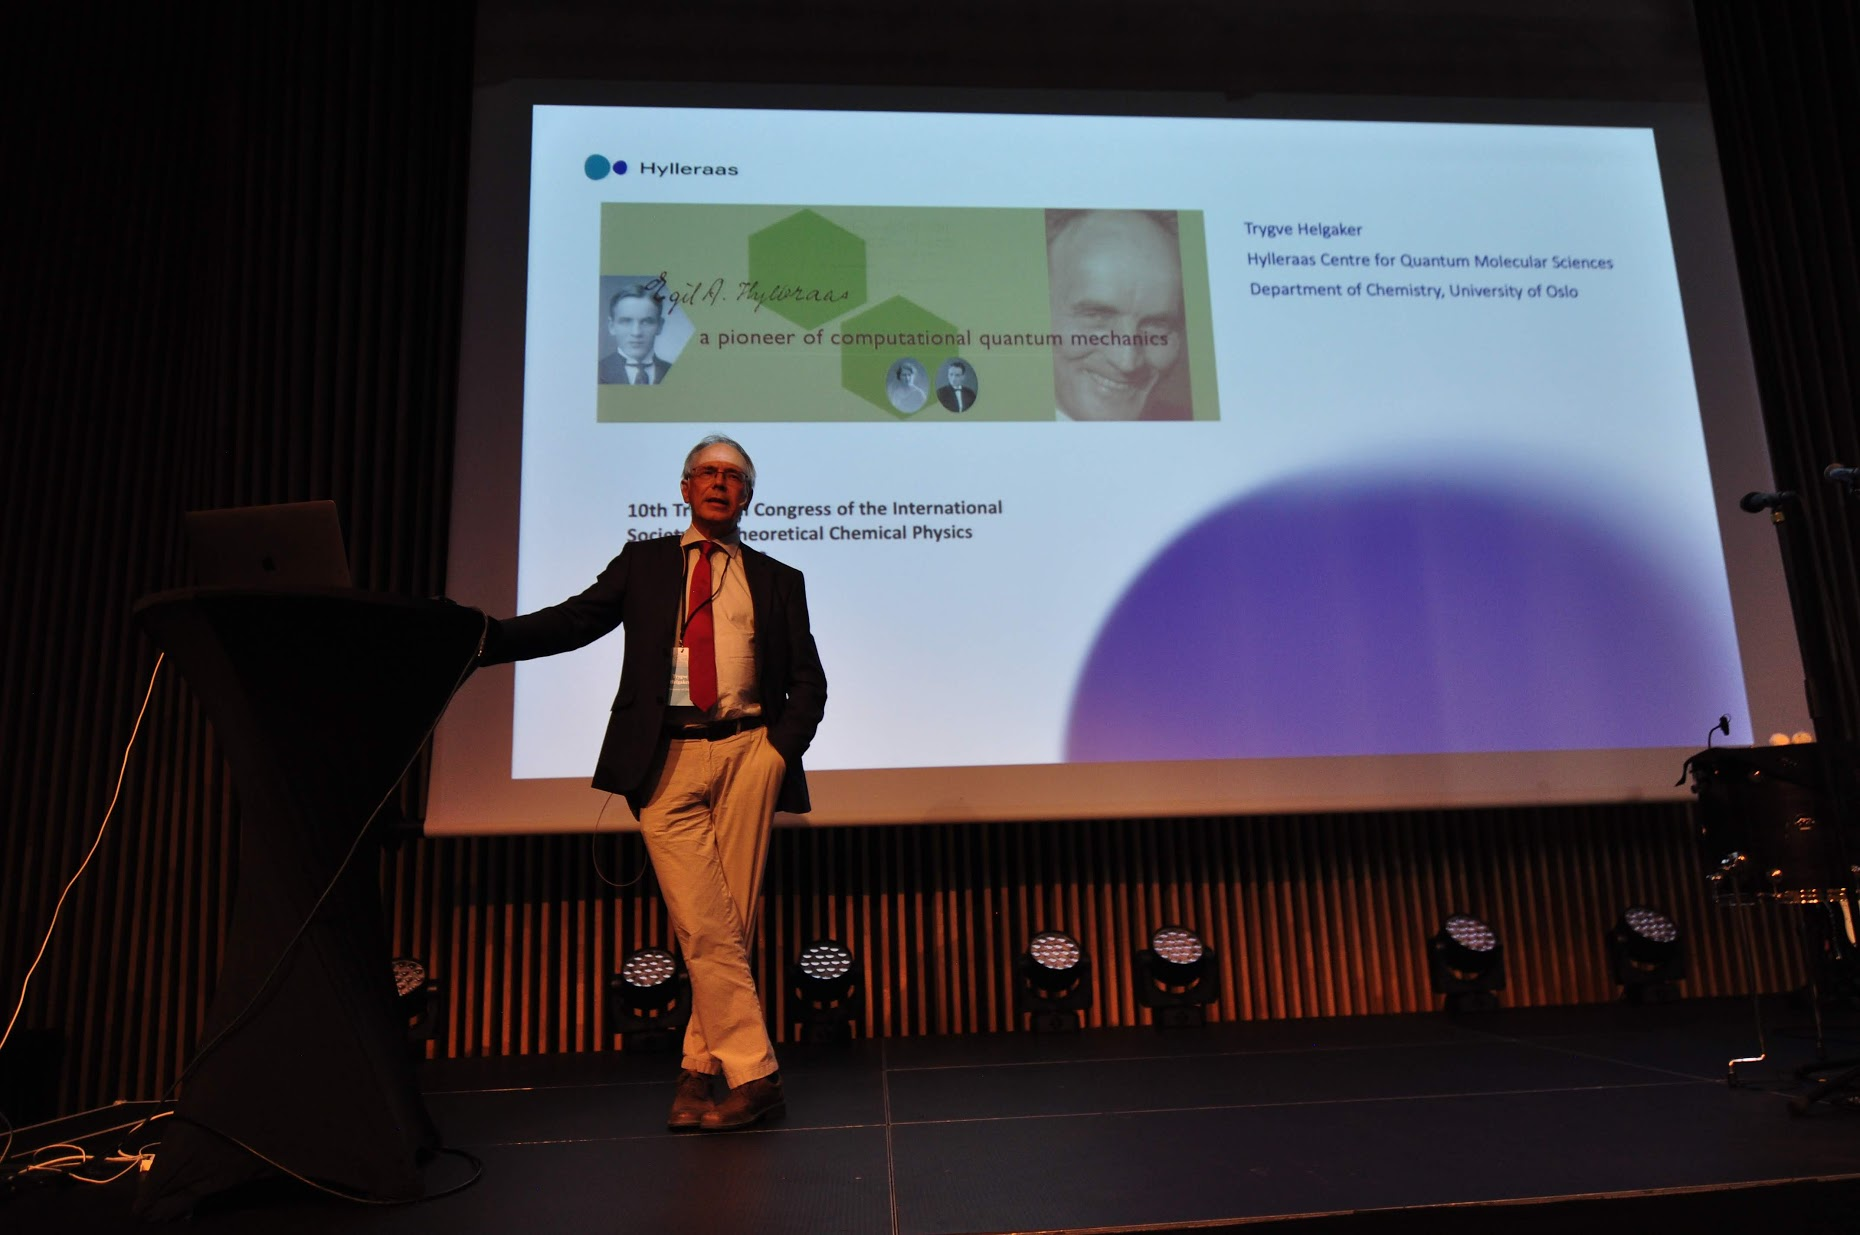 Hylleraas director Trygve Helgaker presenting his plenary lecture. Photo: Luca Frediani